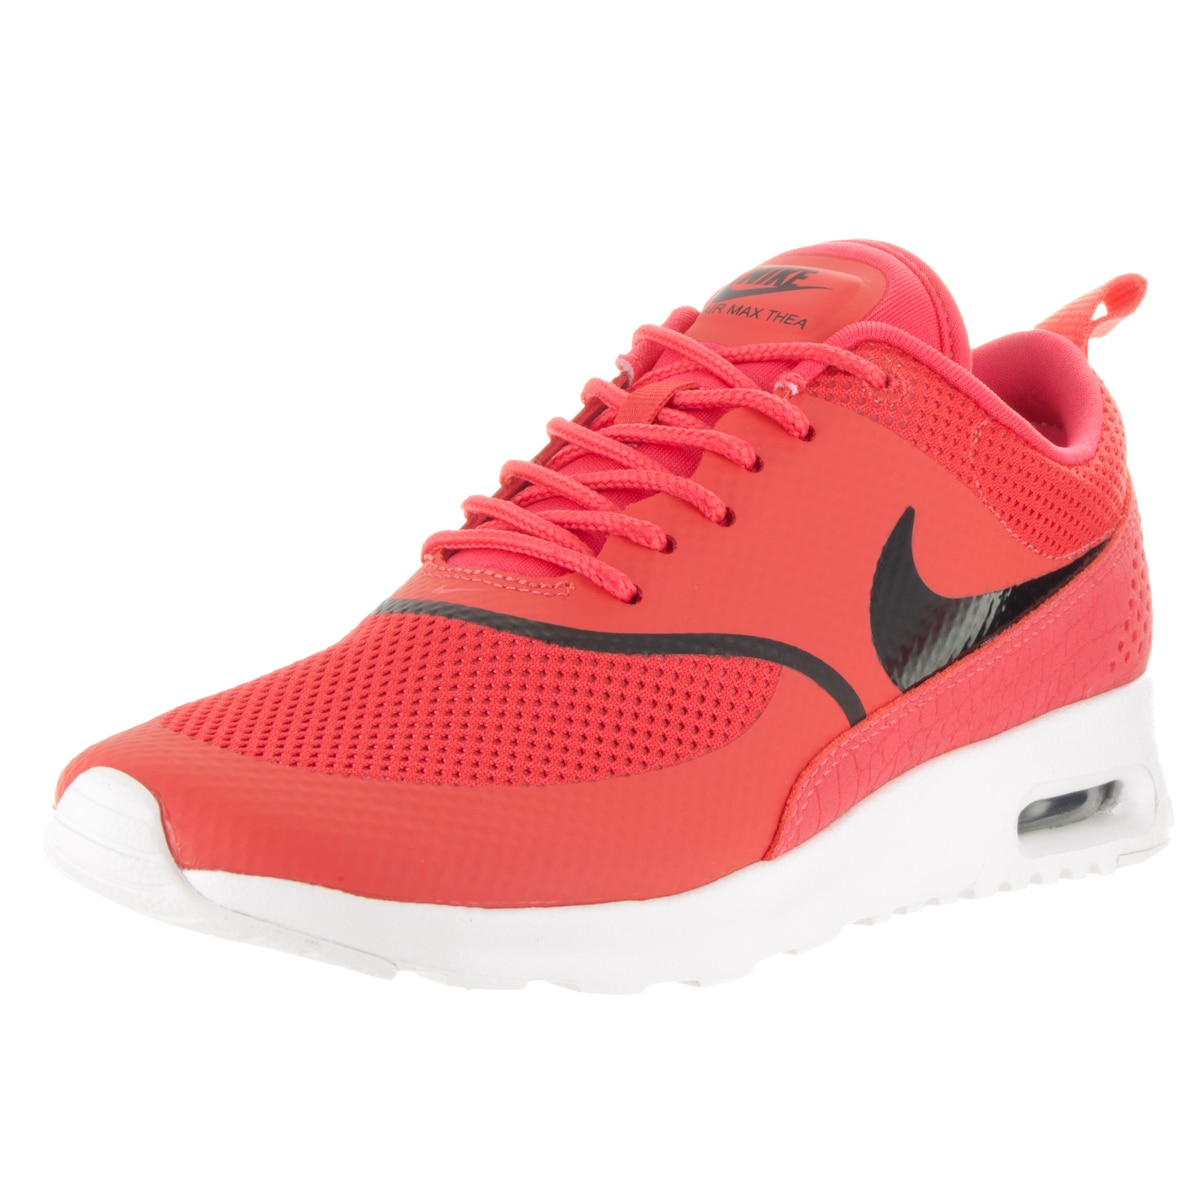 Nike Women's Air Max Thea Running Shoe (6.5), Red (lace)